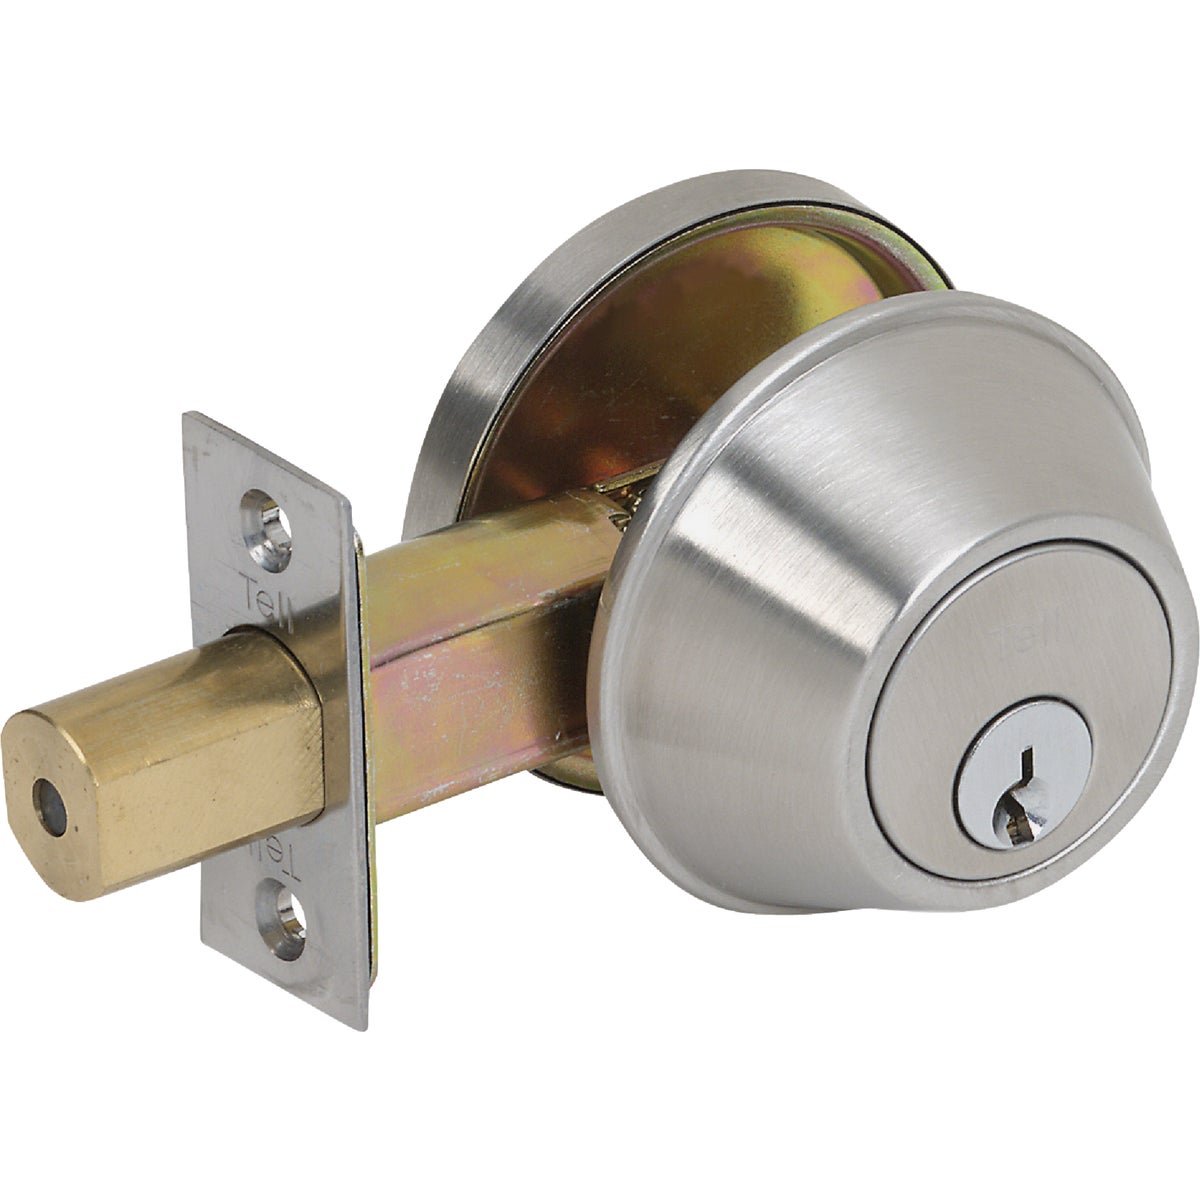 Item 243868, (DB2051). Standard duty commercial single cylinder deadbolt. Satin stainless steel (US32D). performance: Complies with ANSI A156.5, Grade 2 (150,000 cycles).